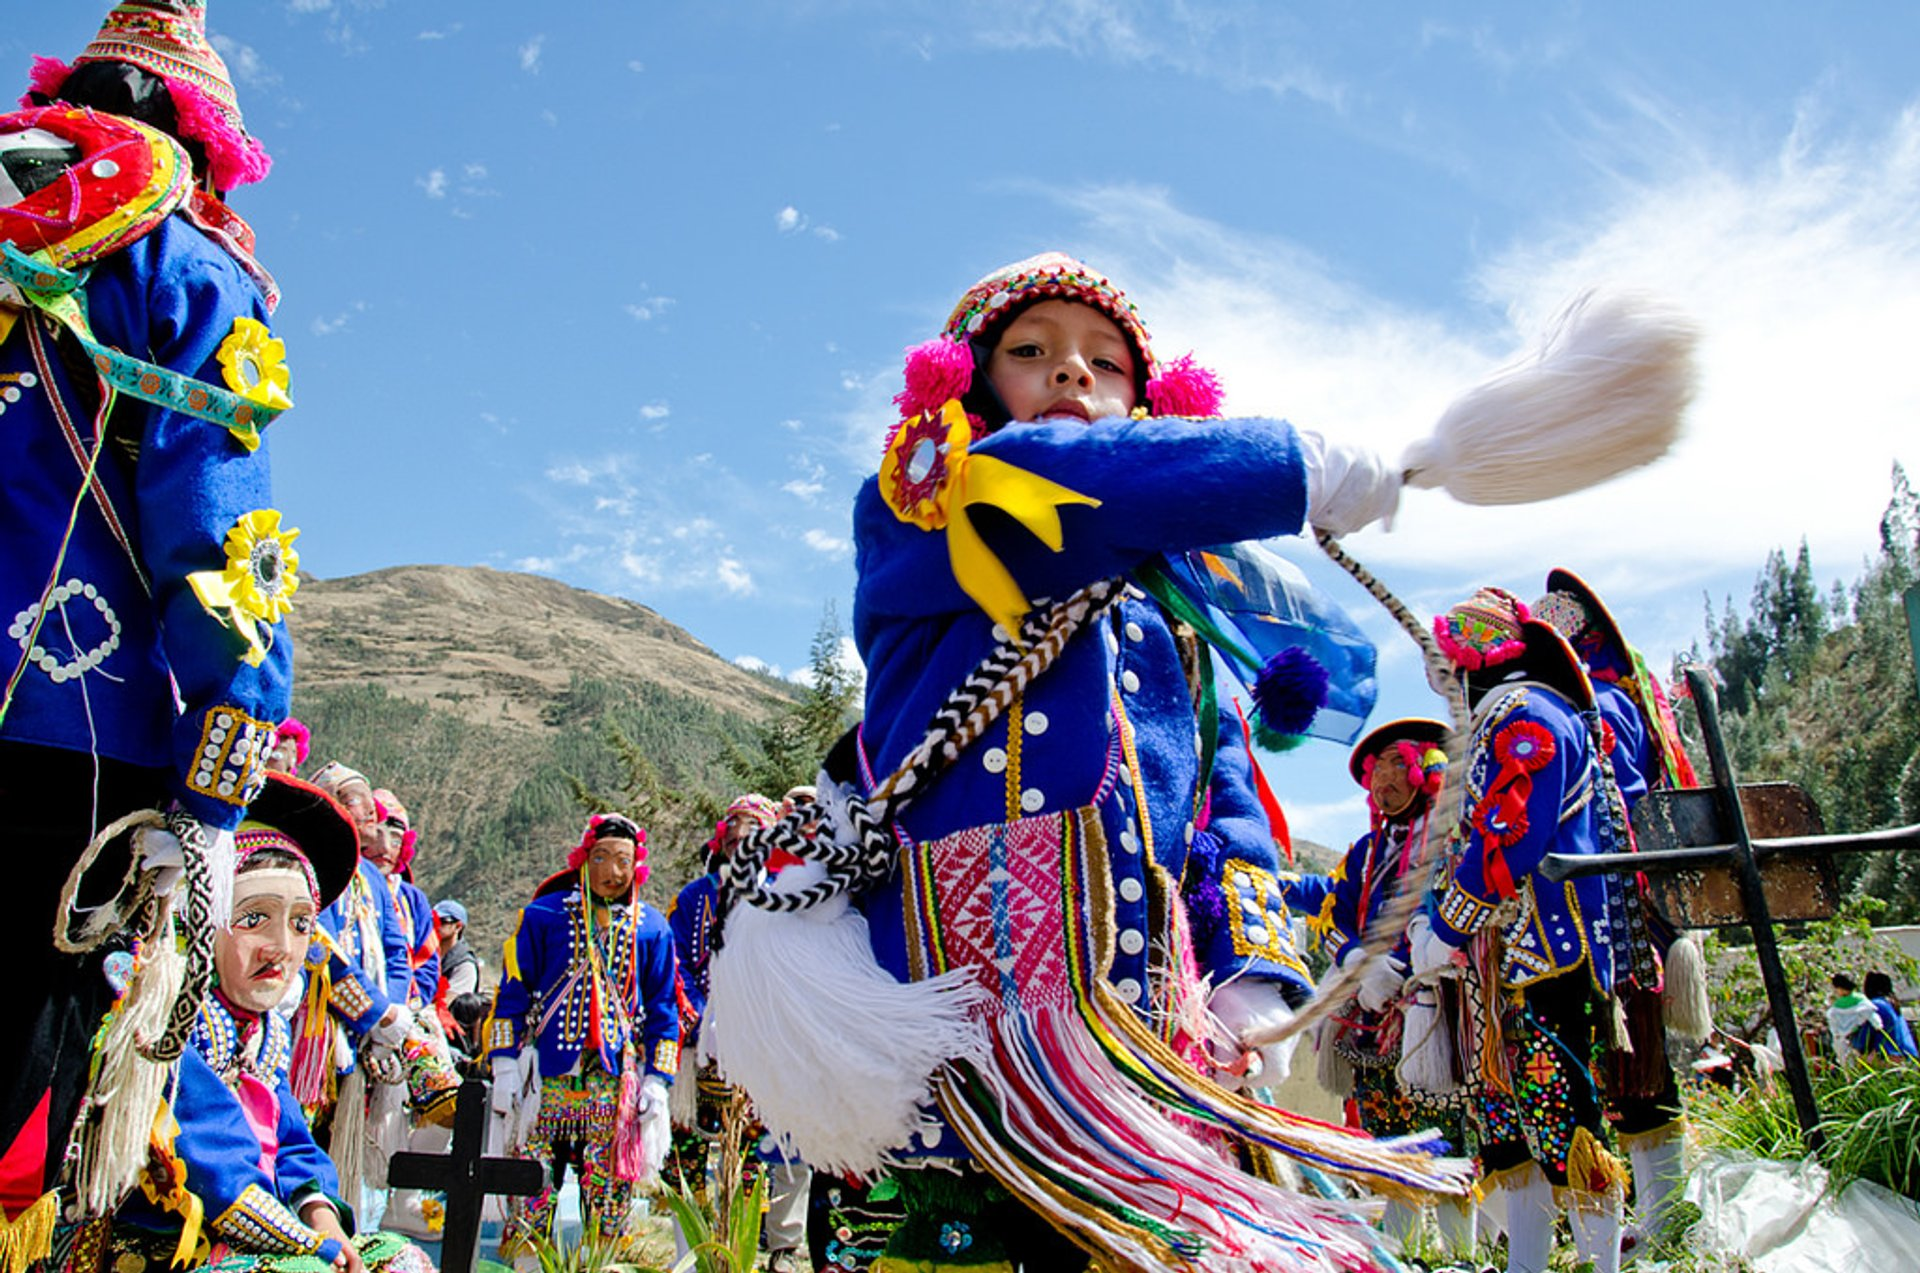 Paucartambo Festival in Peru 2019 - Best Time